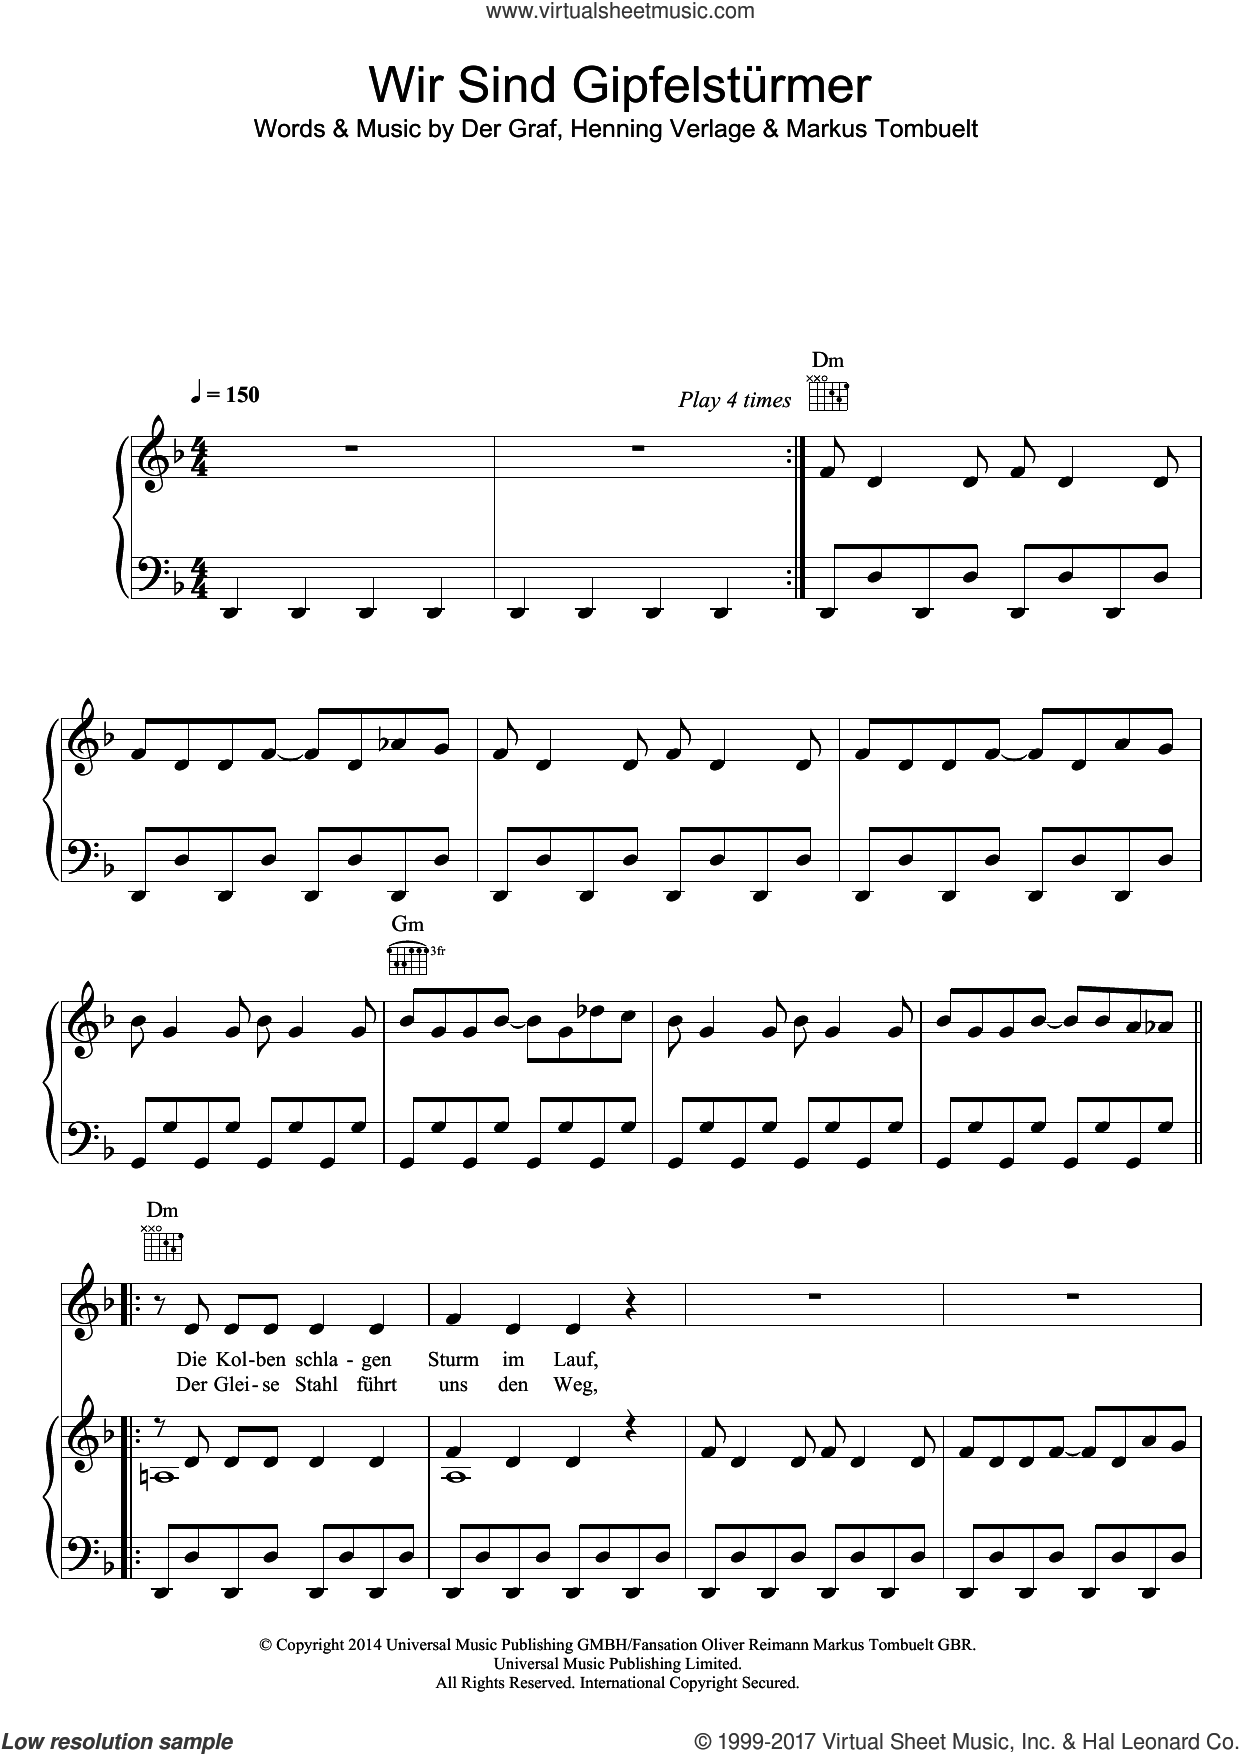 Wir Sind Die Gipfelsturmer sheet music for voice, piano or guitar by Unheilig, Der Graf, Henning Verlage and Markus Tombuelt, intermediate skill level